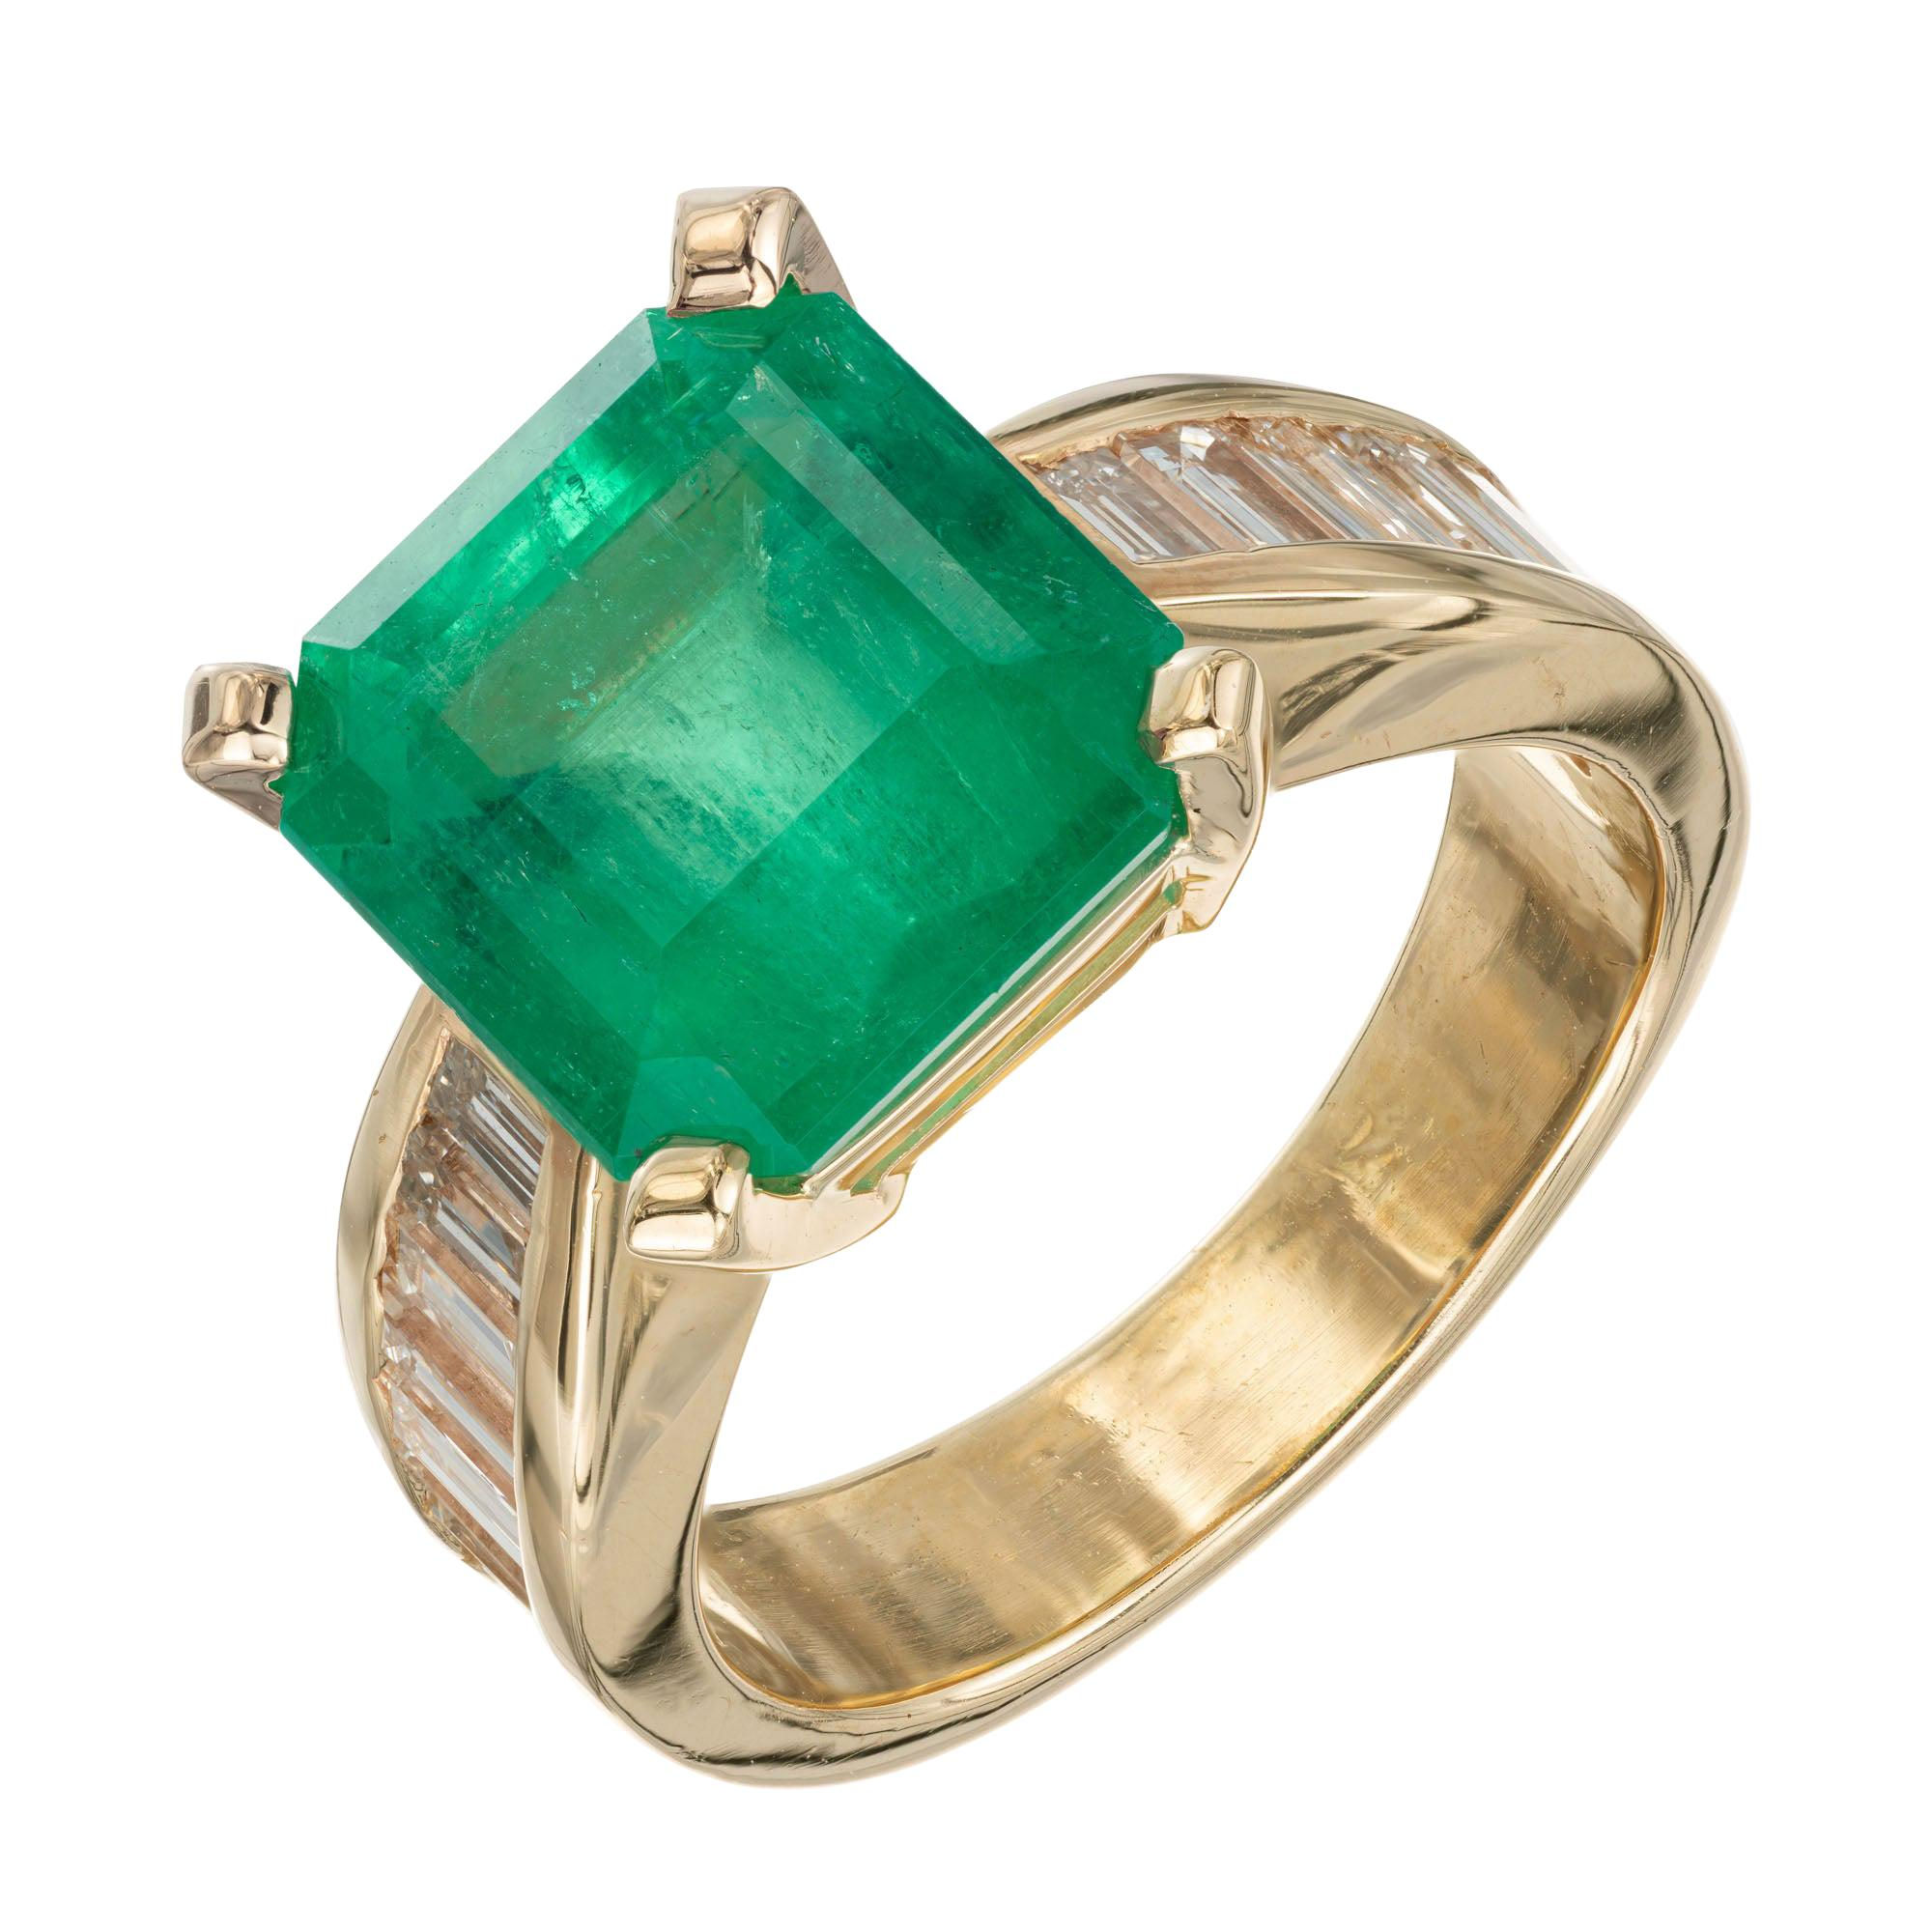 b44e732a1c396 Antique Emerald Rings - 3,101 For Sale at 1stdibs